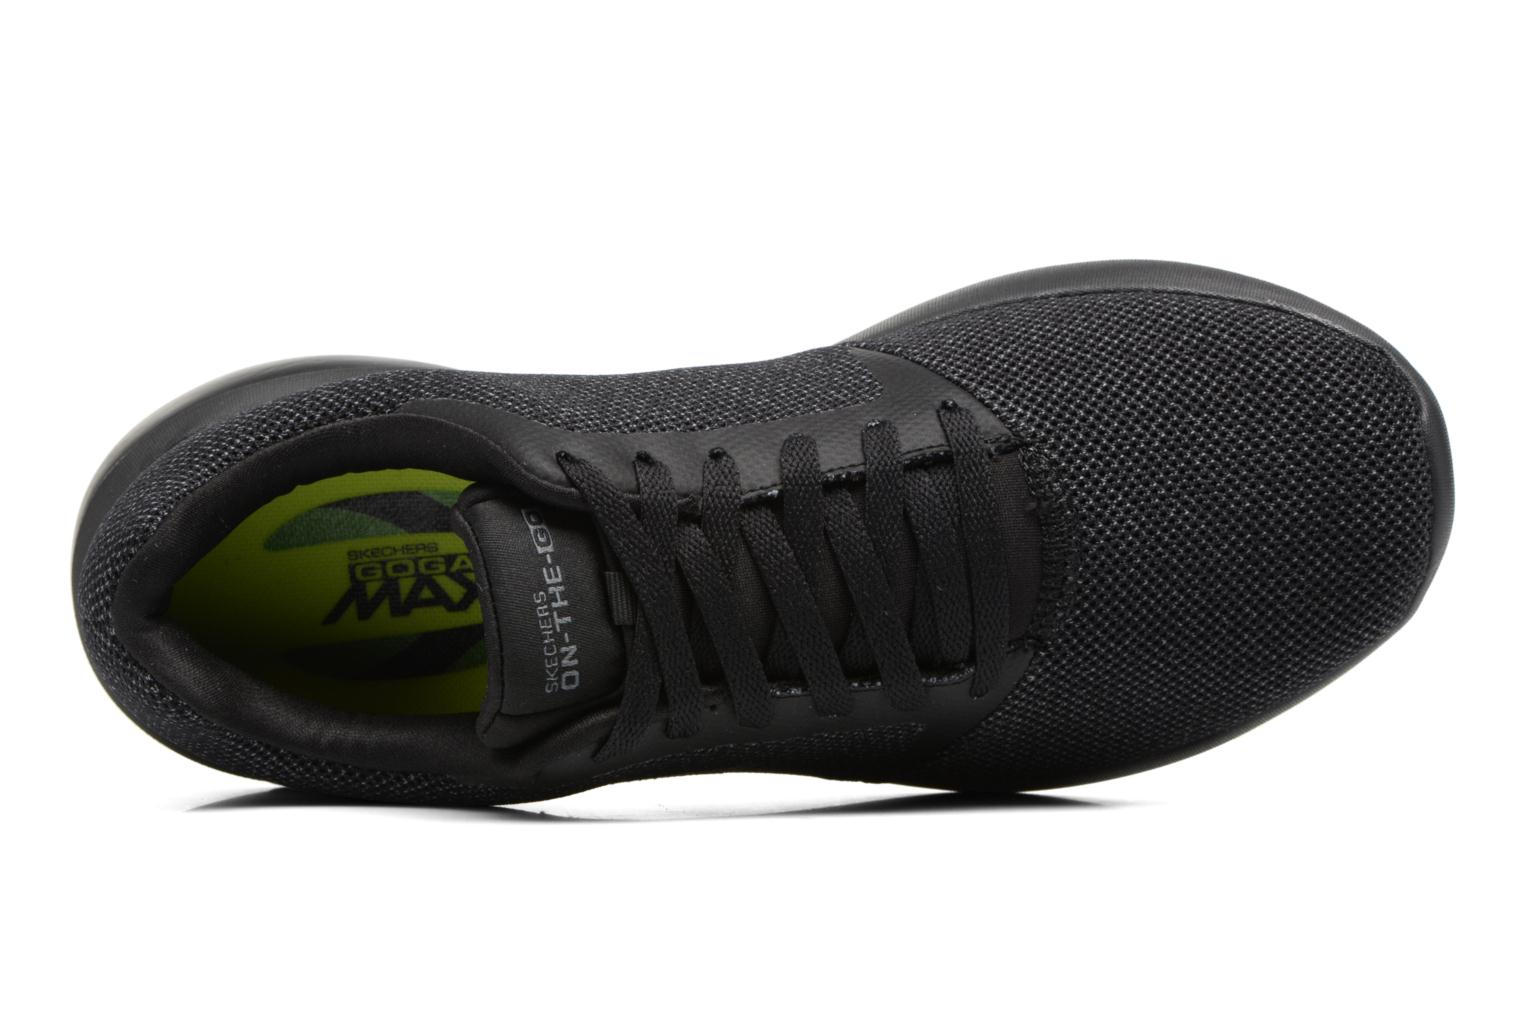 Zapatillas de deporte Skechers On-the-go City 3.0 Negro vista lateral izquierda